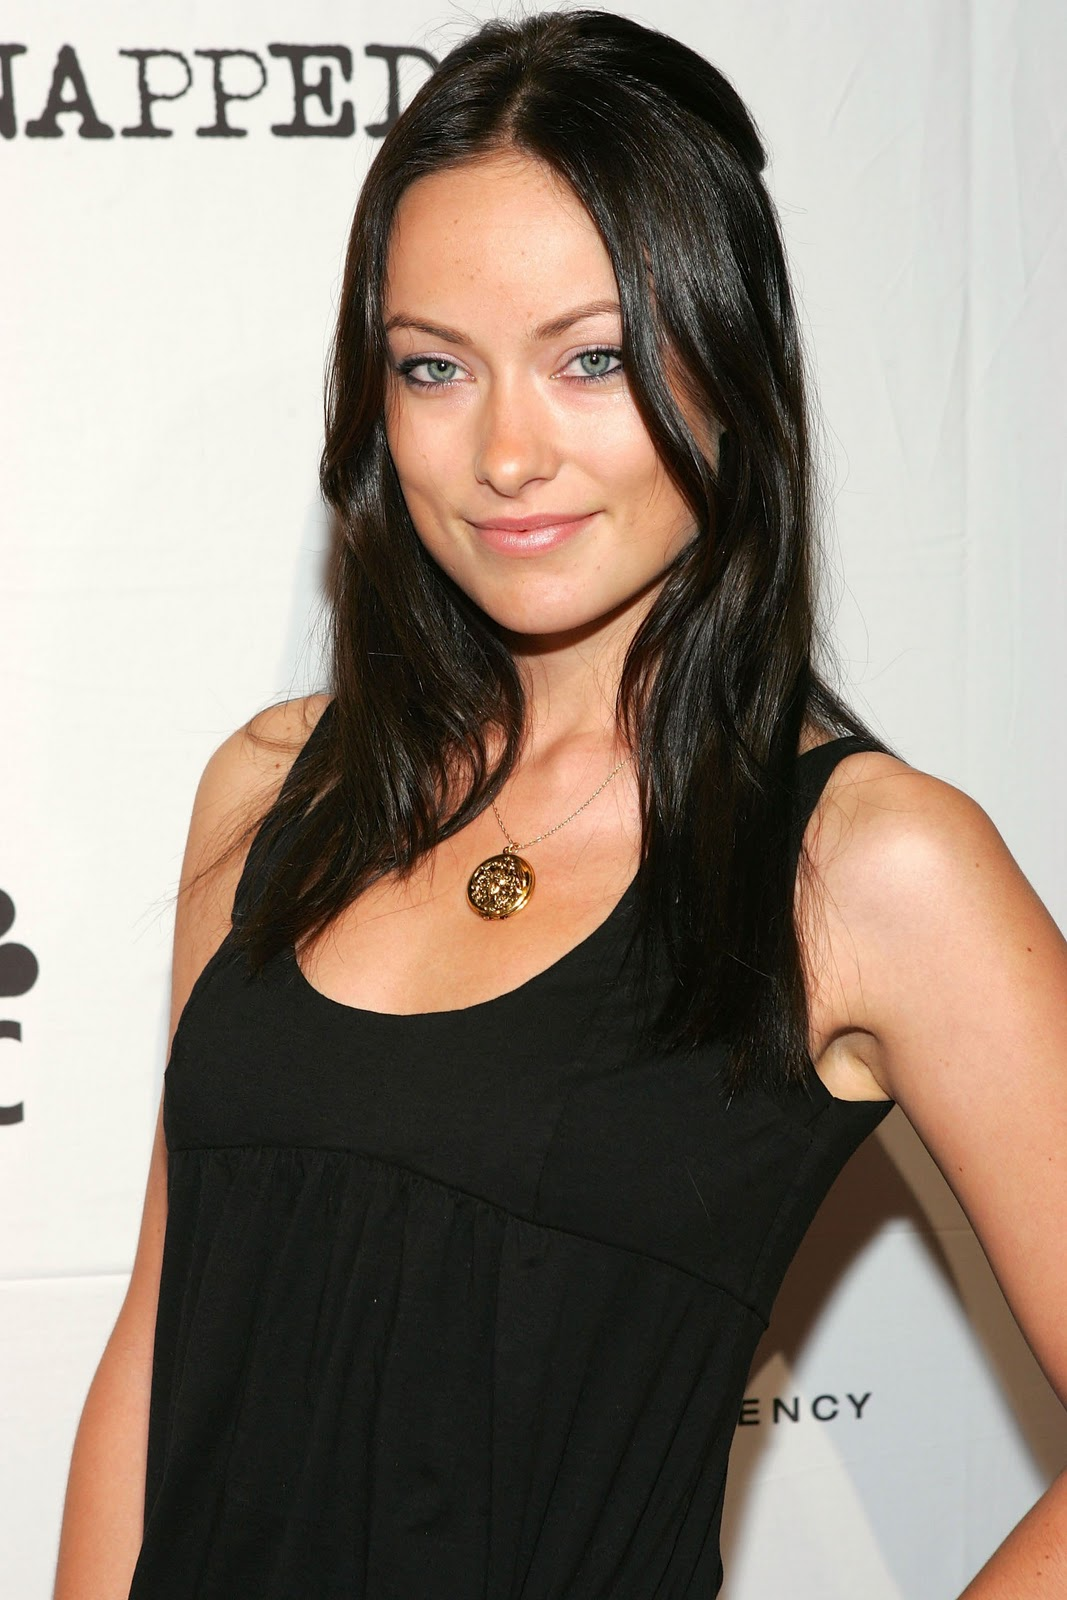 Olivia Wilde Profile And New Pictures 2013: Olivia Wilde Pictures Gallery (6)